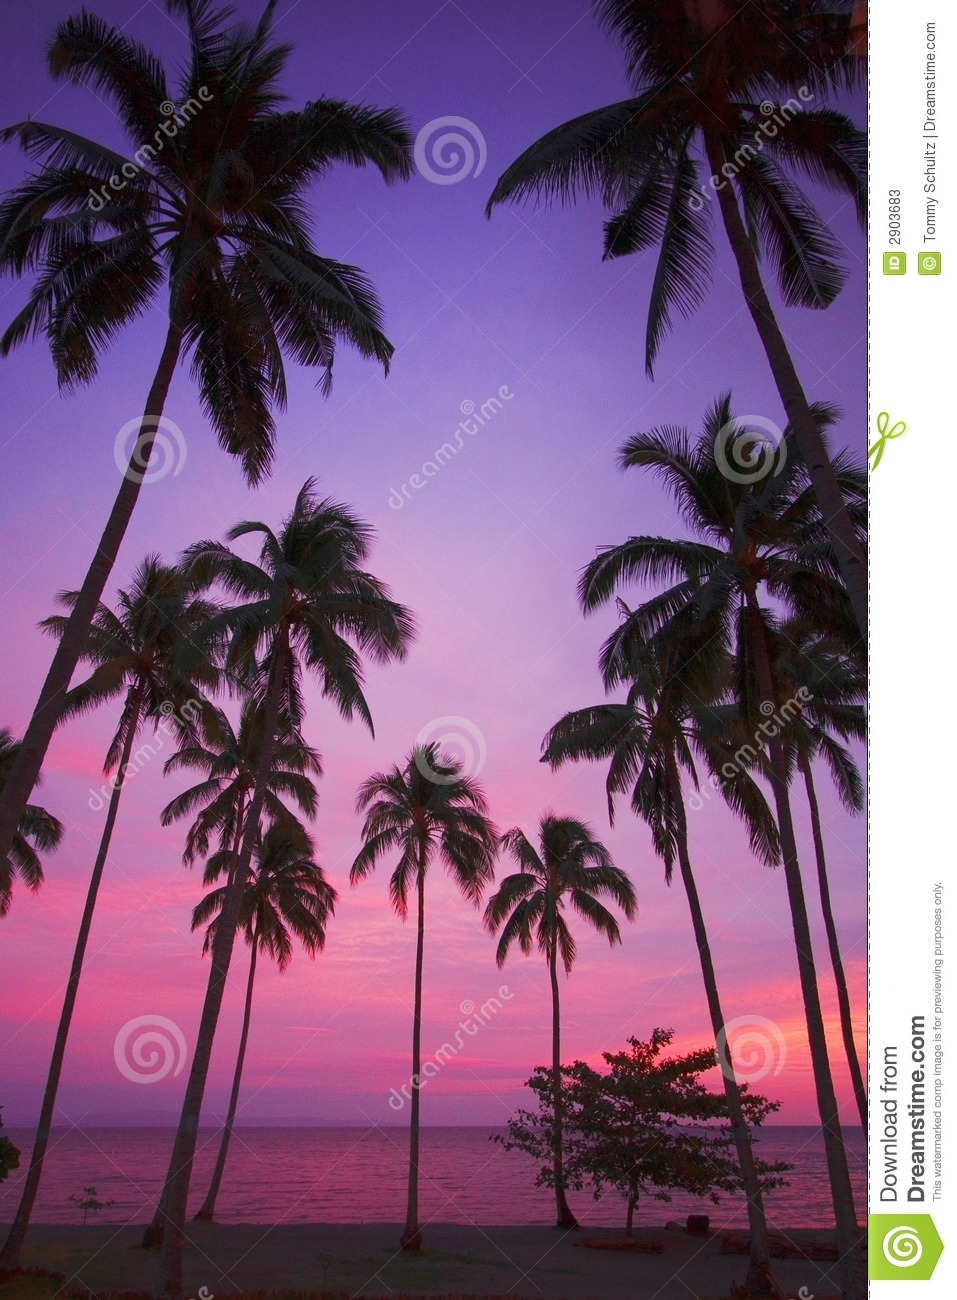 Hd Vector Wallpapers Free Download Purple Tropical Sunset Stock Image Image Of Holidays